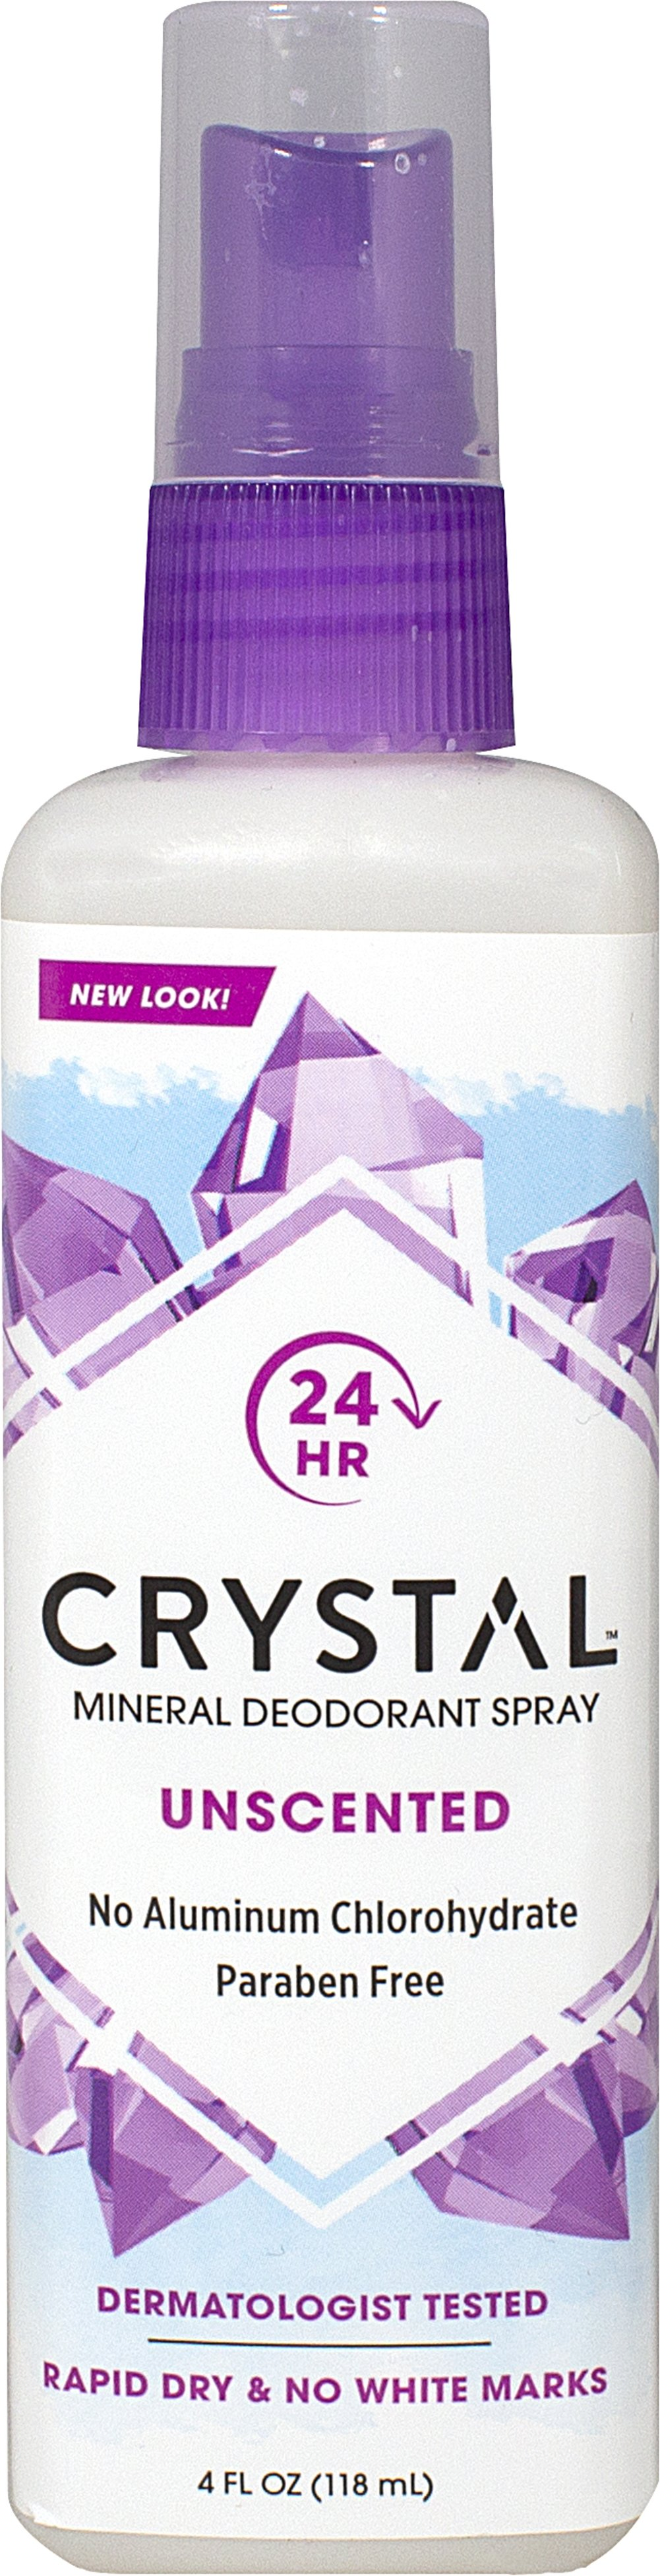 Crystal® Body Deodorant Spray  4 fl oz Spray  $2.79